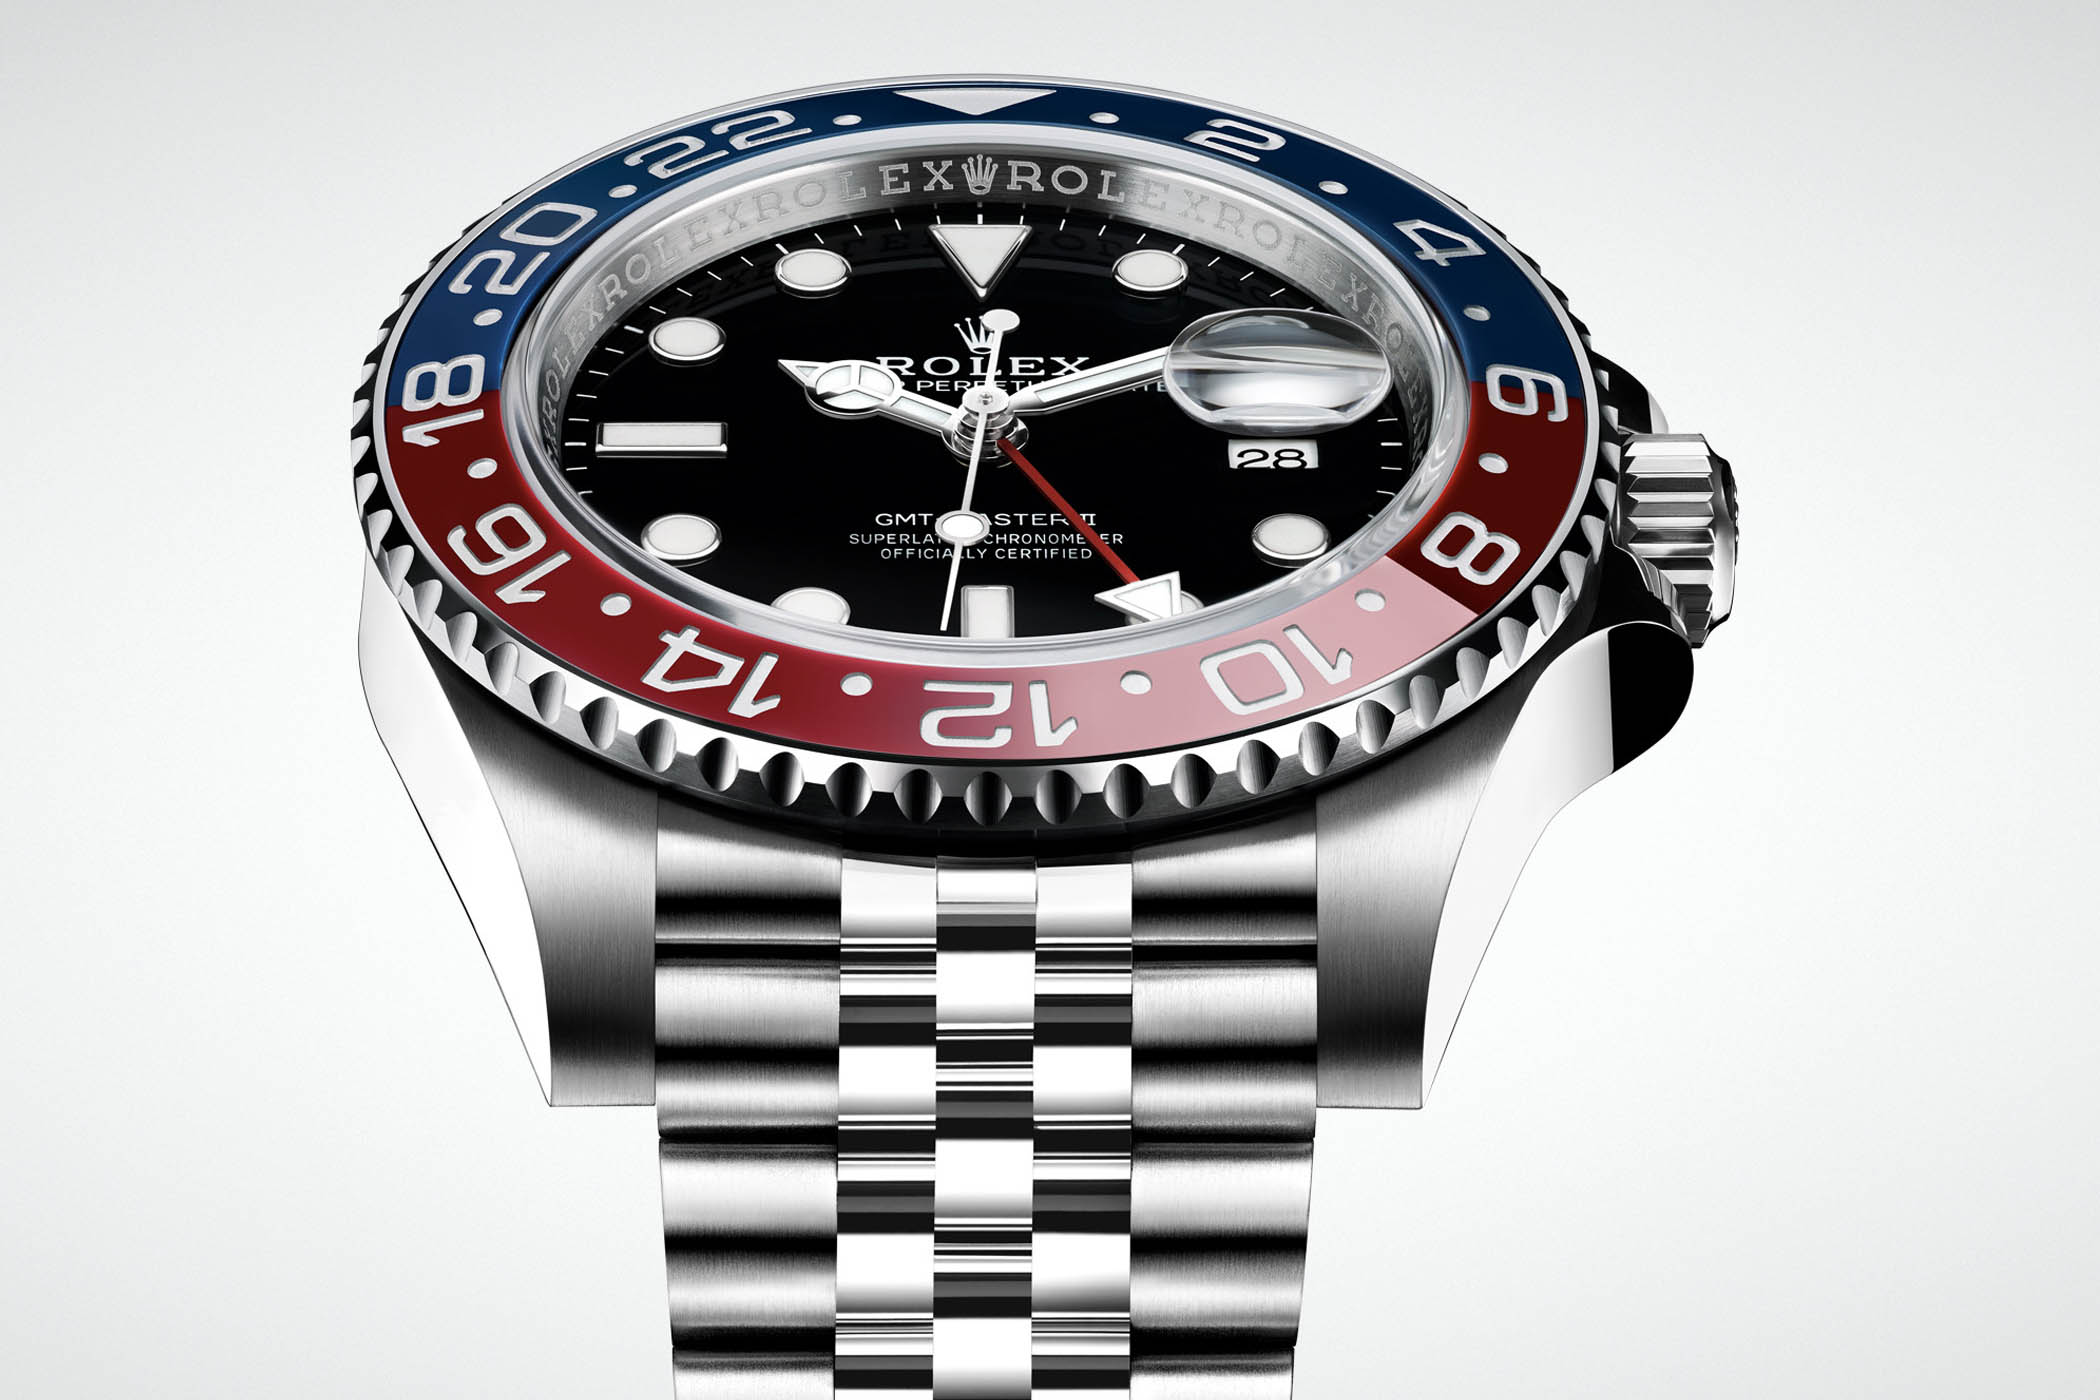 baselworld 2018 Rolex GMT Master II Horloges china 126710 BLRO